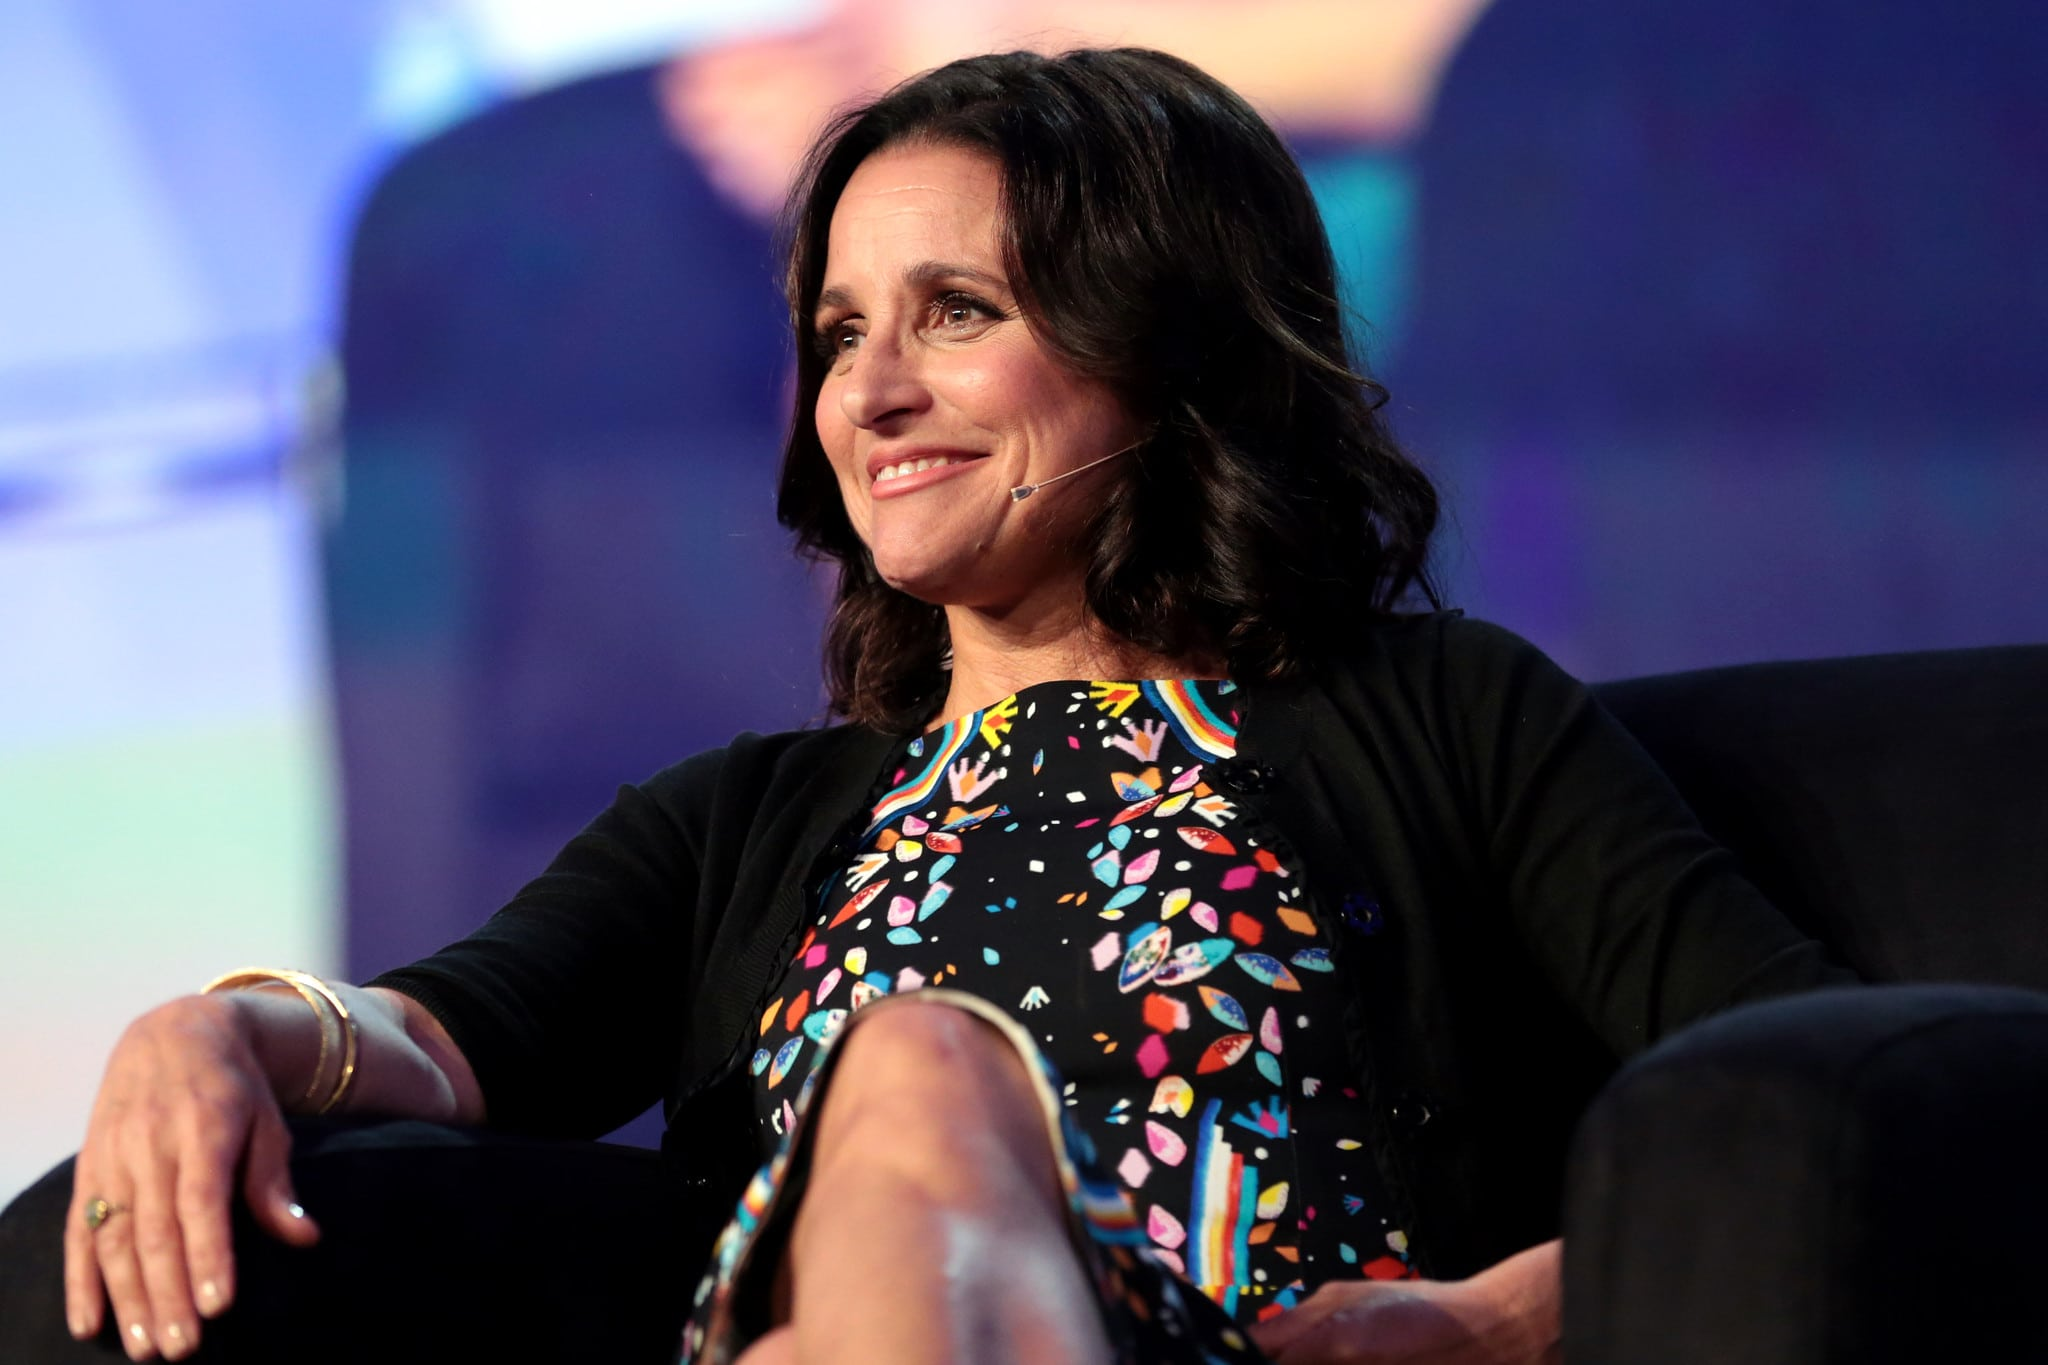 Apple TV+ lands another big name with the Julia Louis-Dreyfus deal.